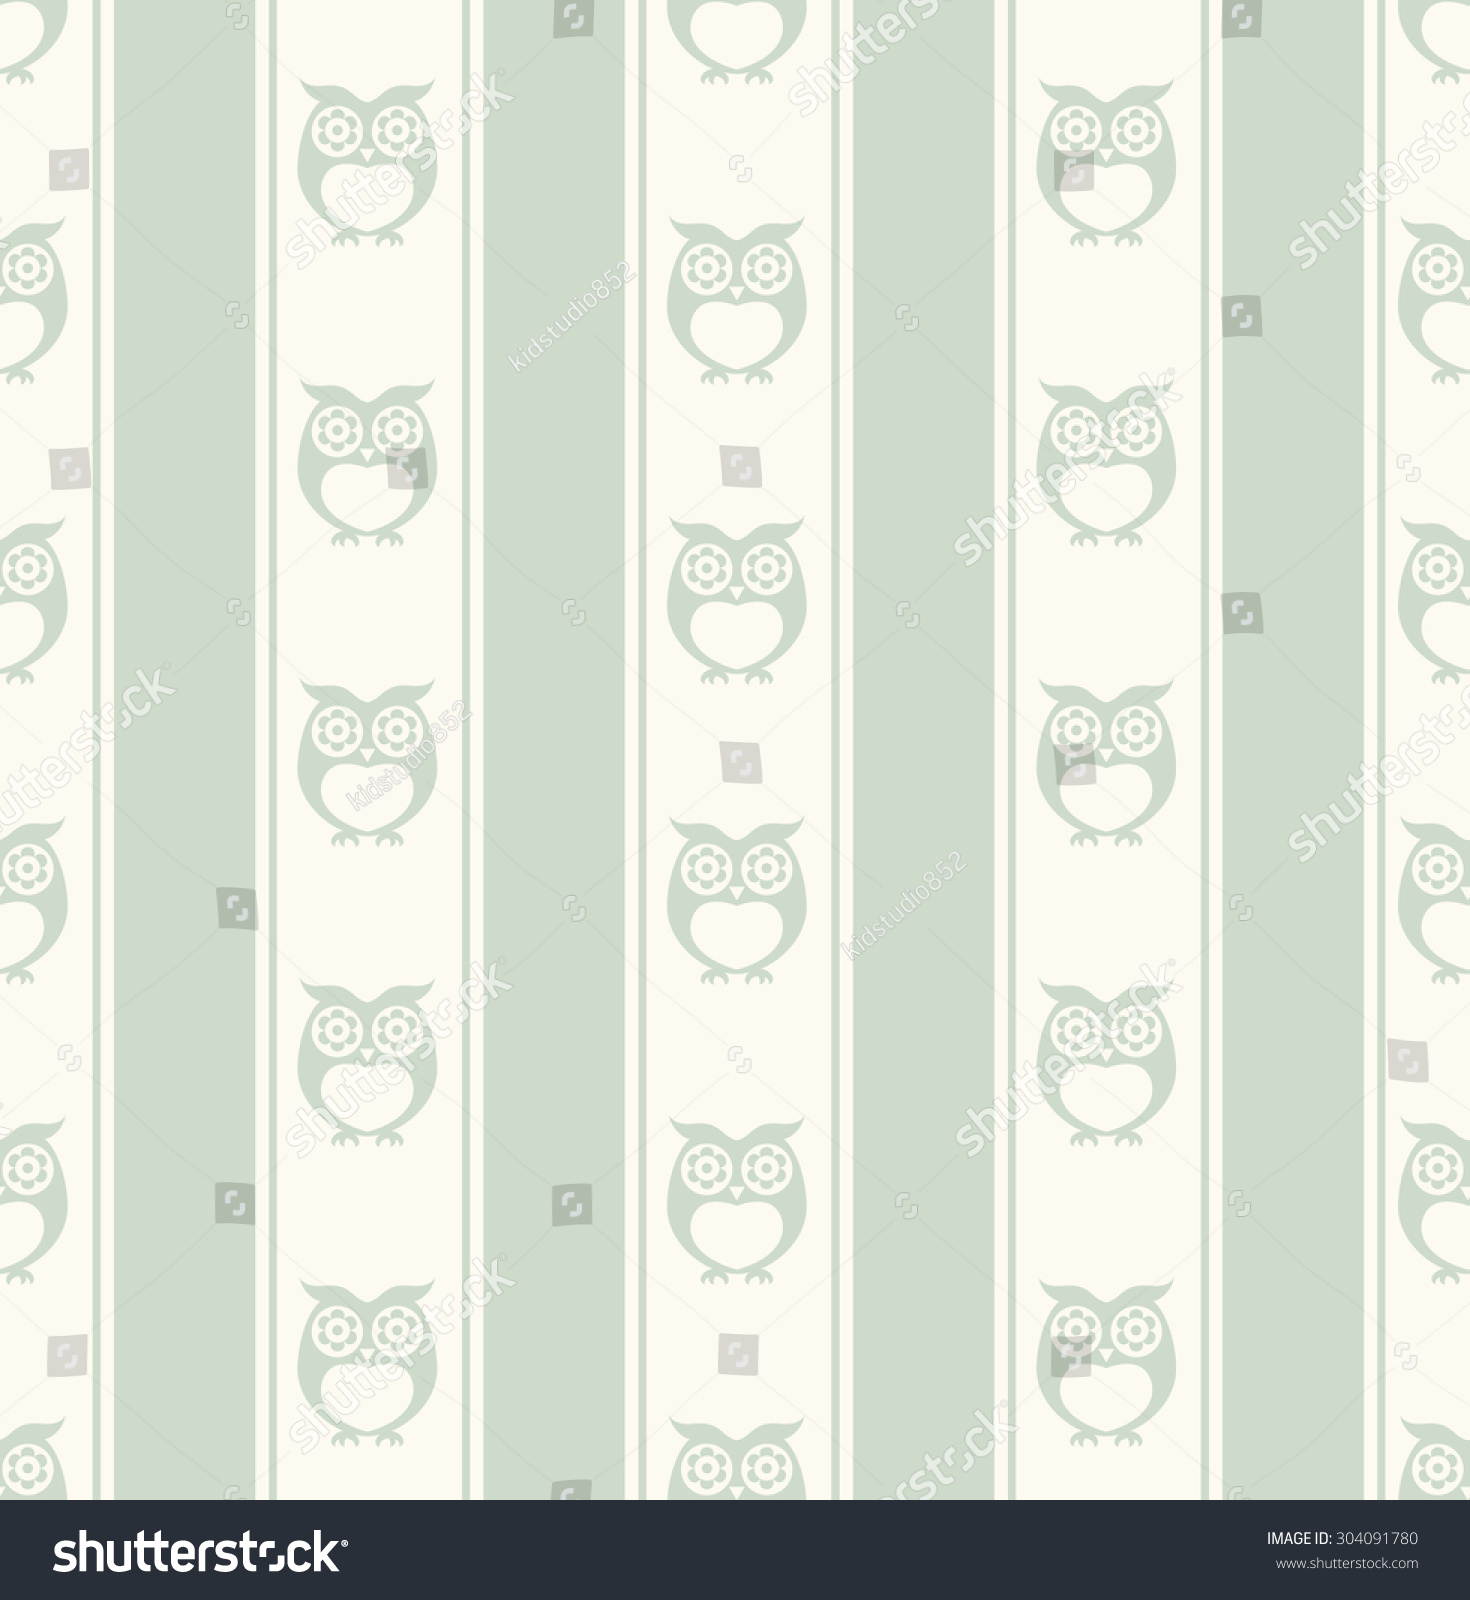 seamless owls wallpaper background pattern